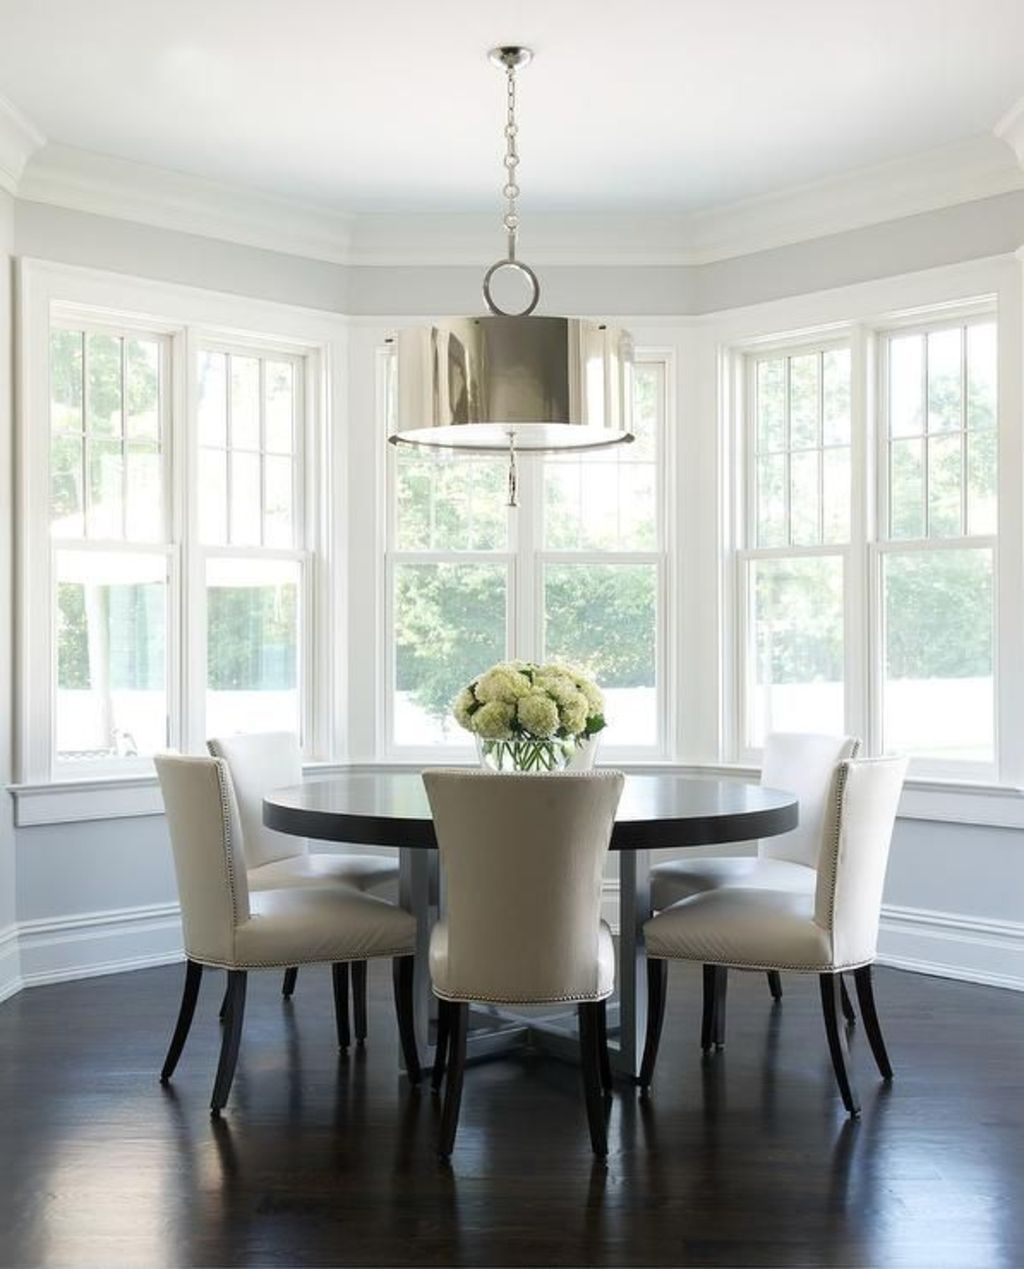 Dazzling Pendant Fixtures For A Richer Dining Room Display Round